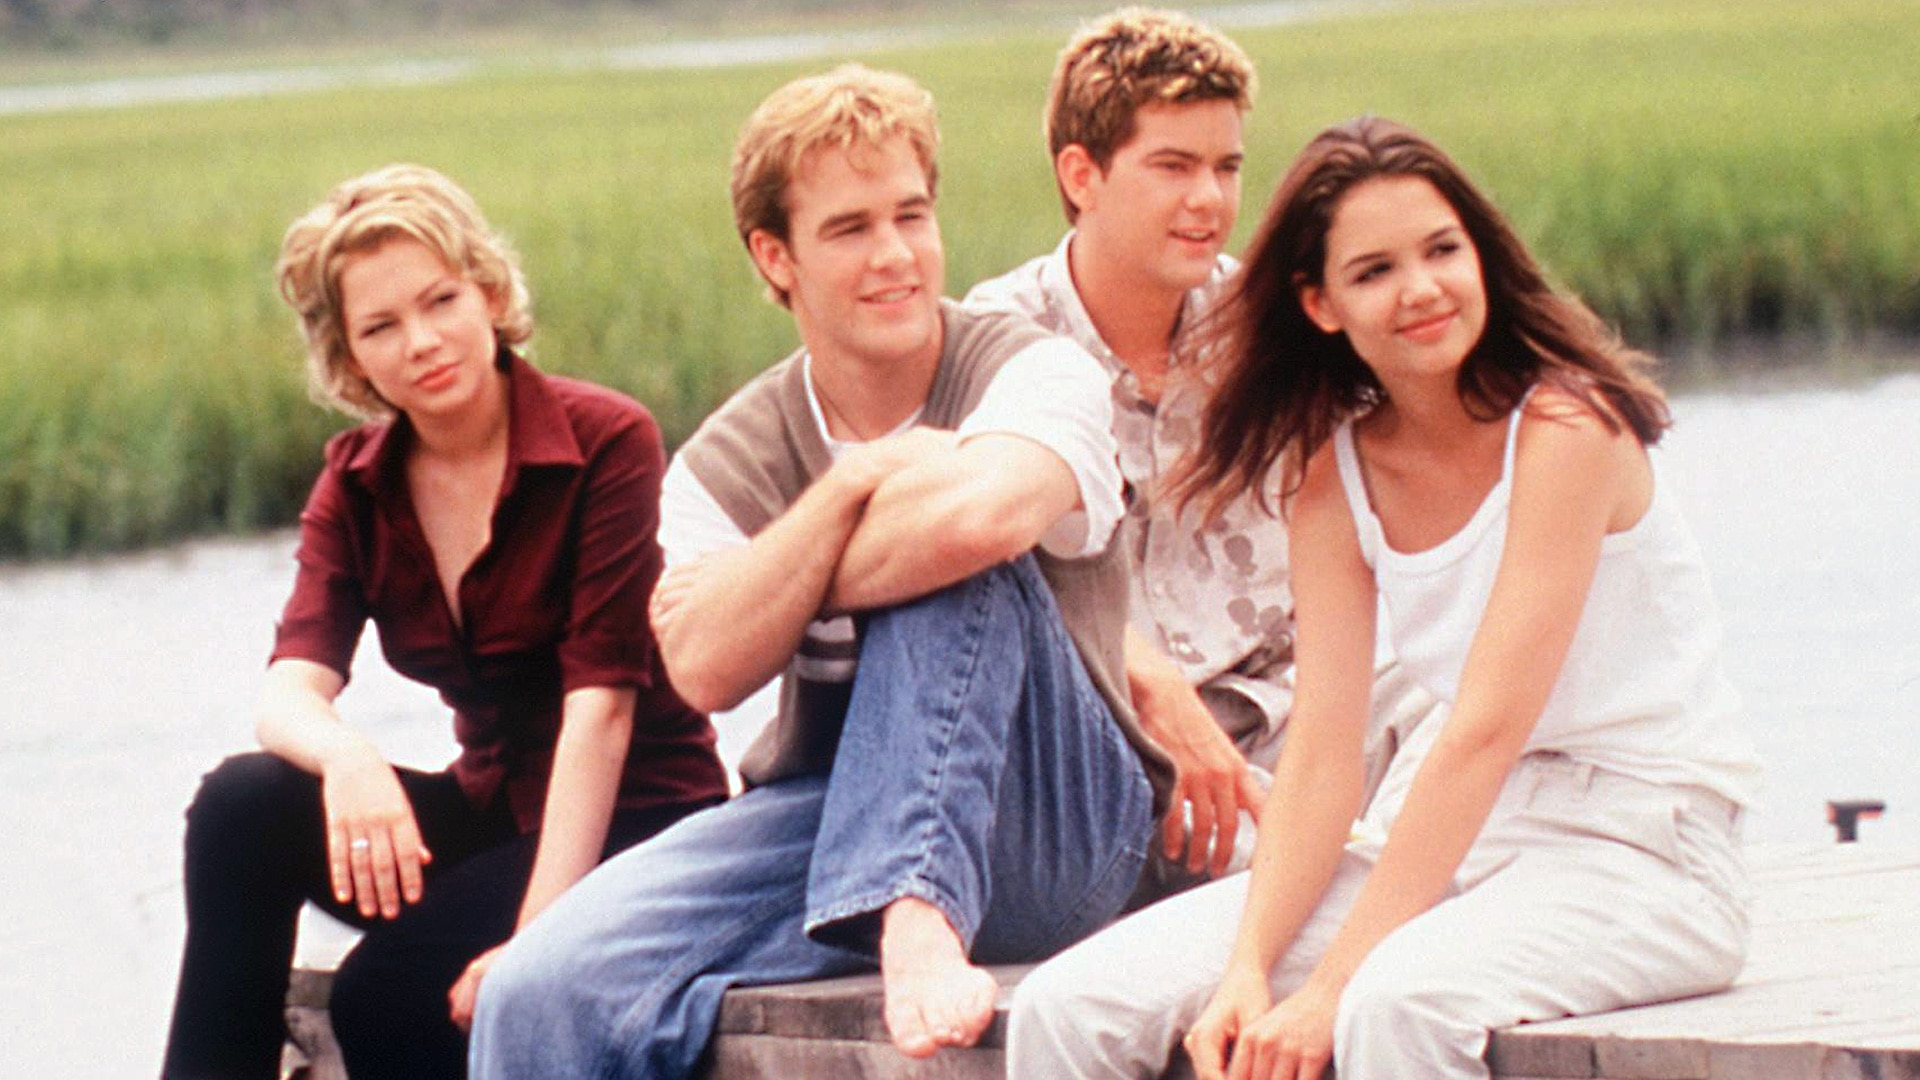 Dawson's Creek - Episode Guide - All 4